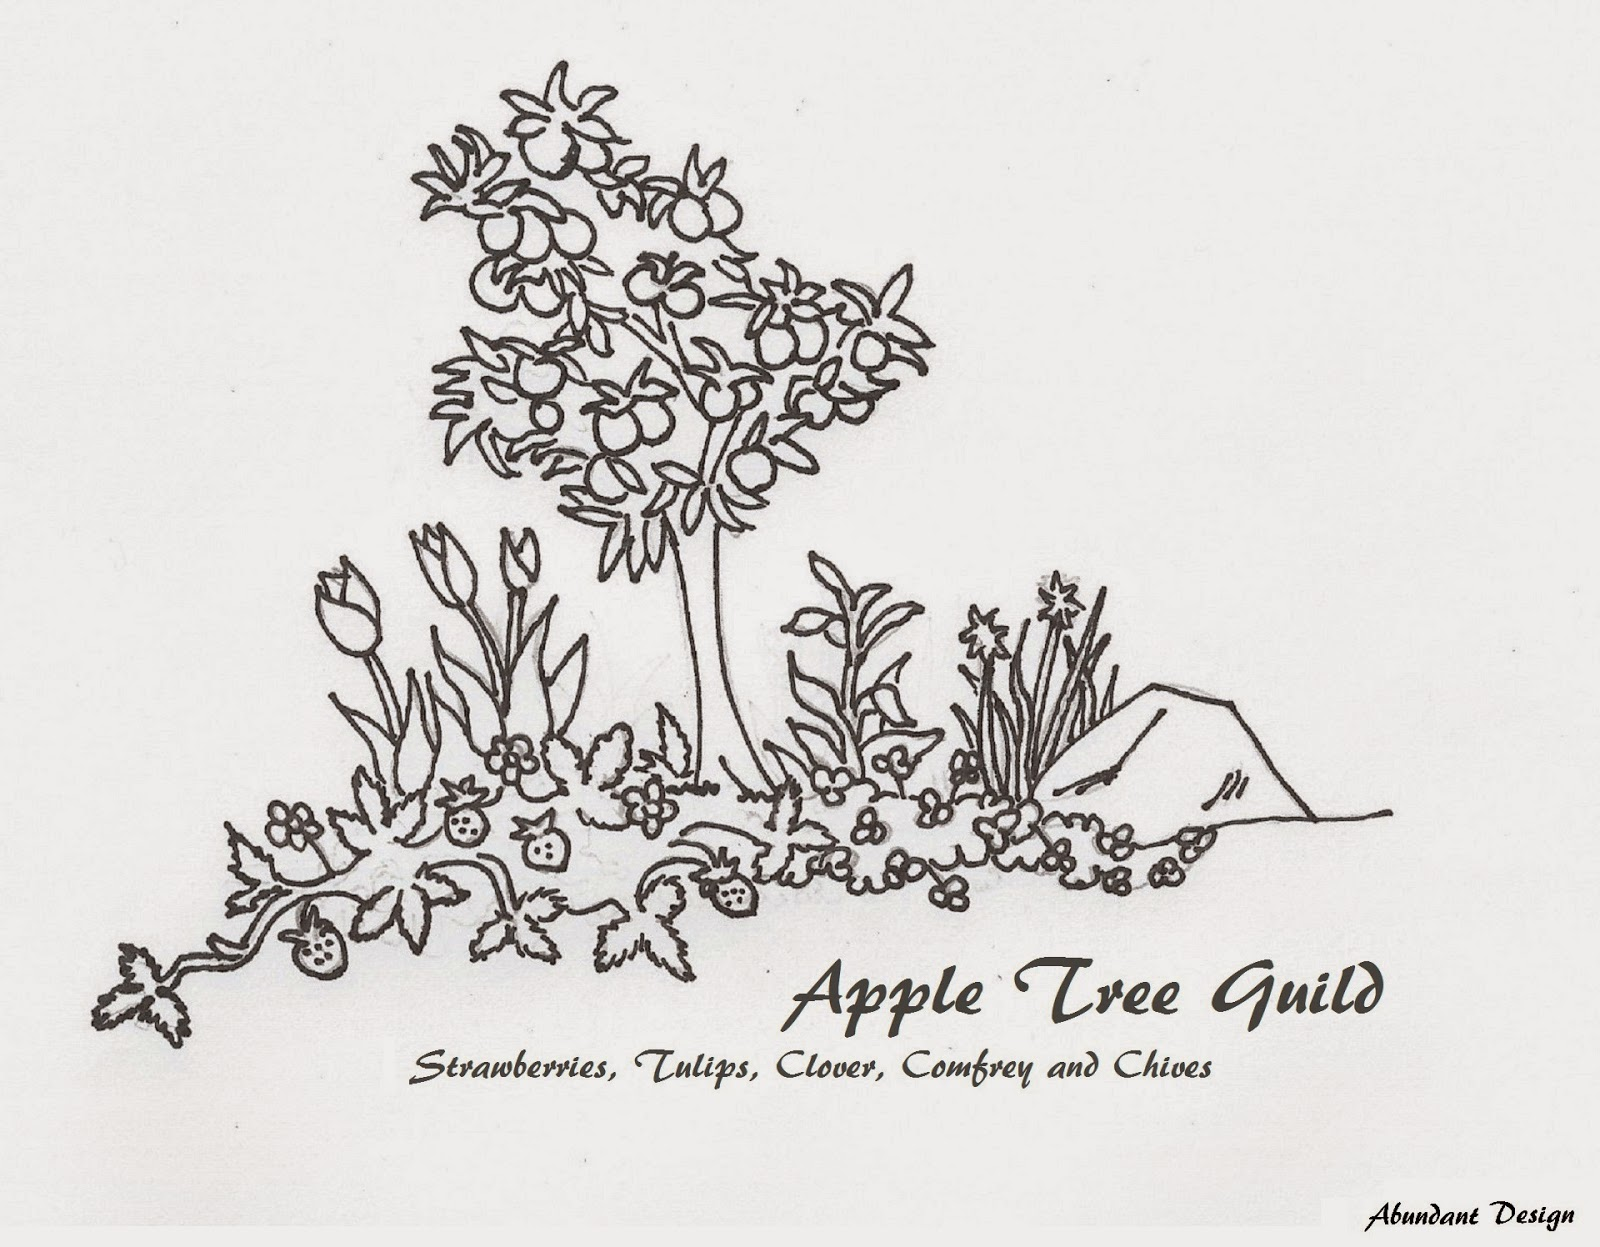 Apple Themed Coloring Pages : Coloring page for kids apple tree guild education forum